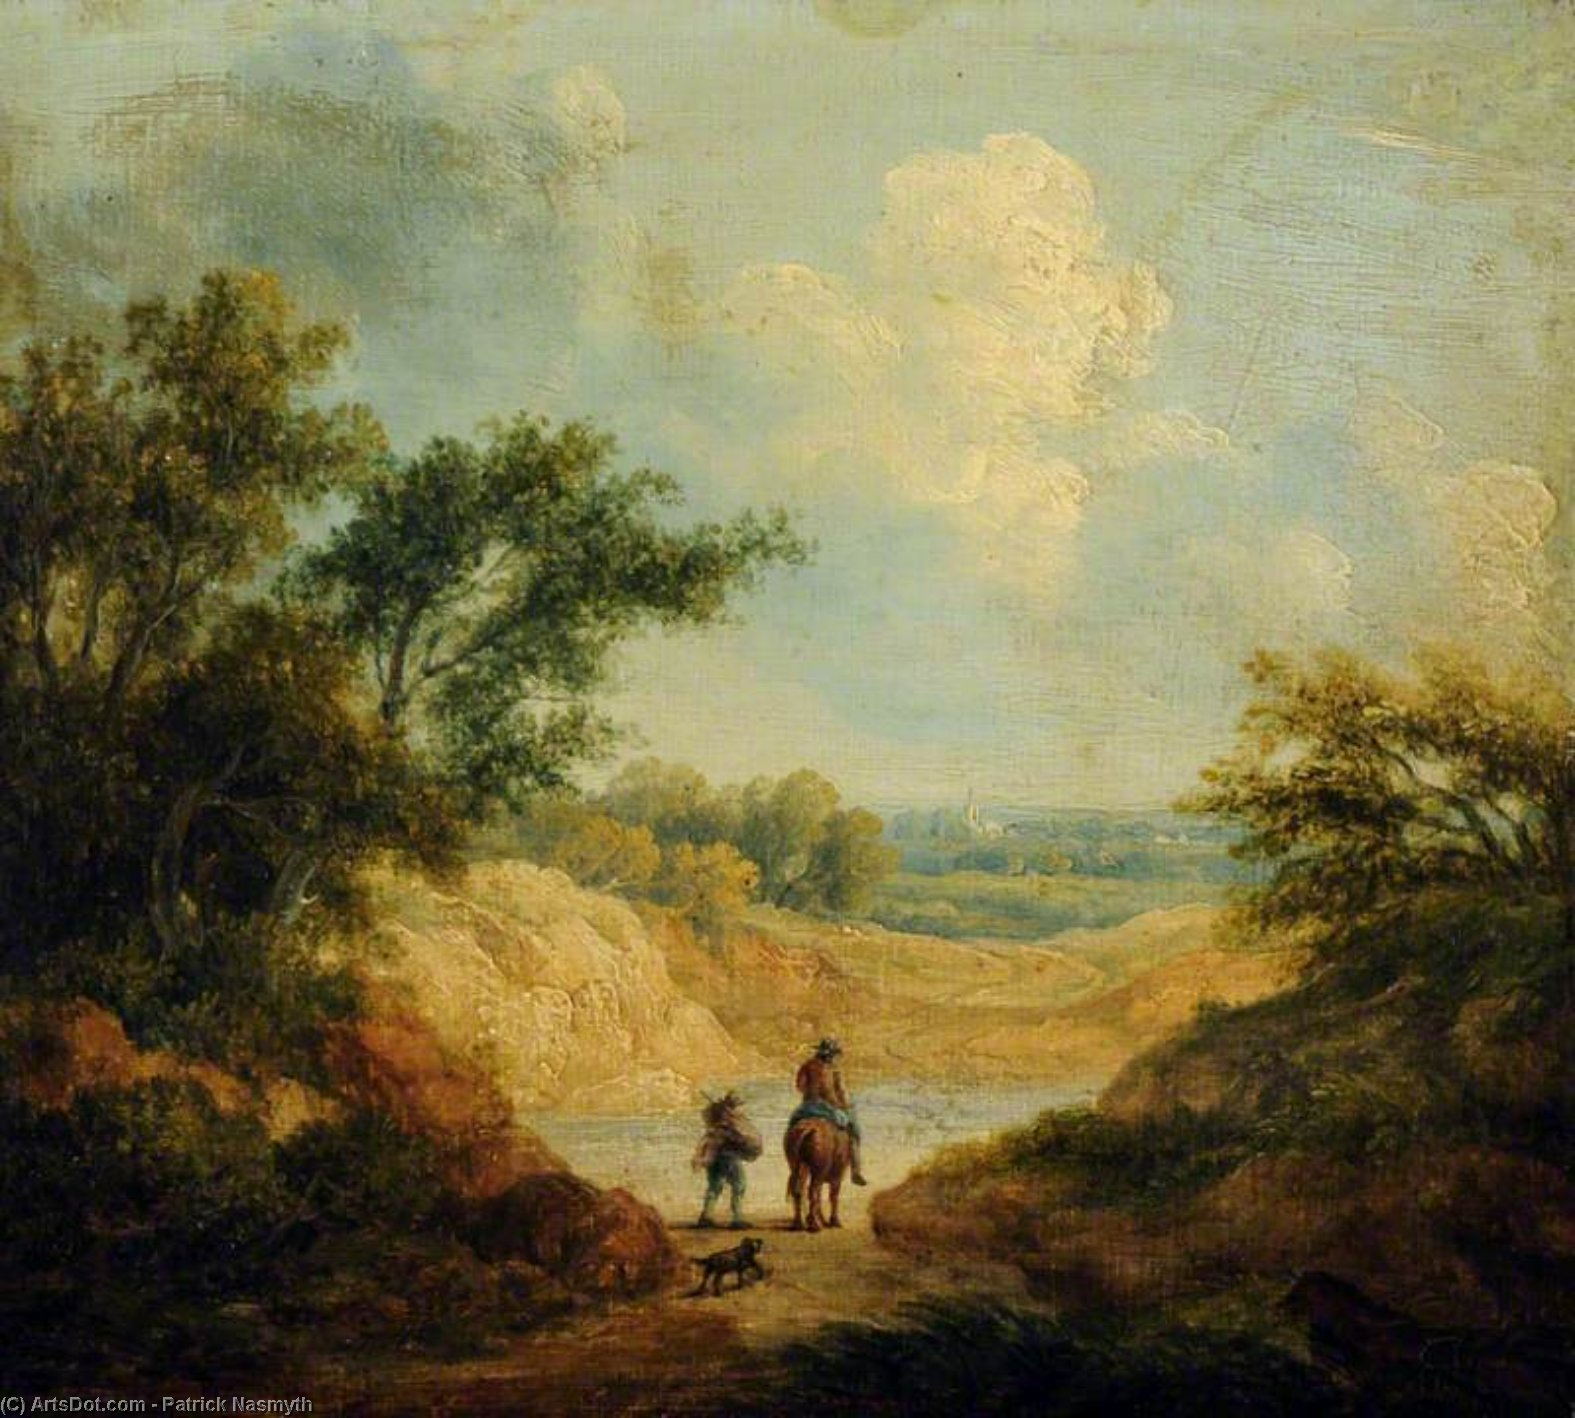 Landscape With A Figure On Horseback, And A Fellow Traveller On Foot by Patrick Nasmyth (1787-1831, United Kingdom)